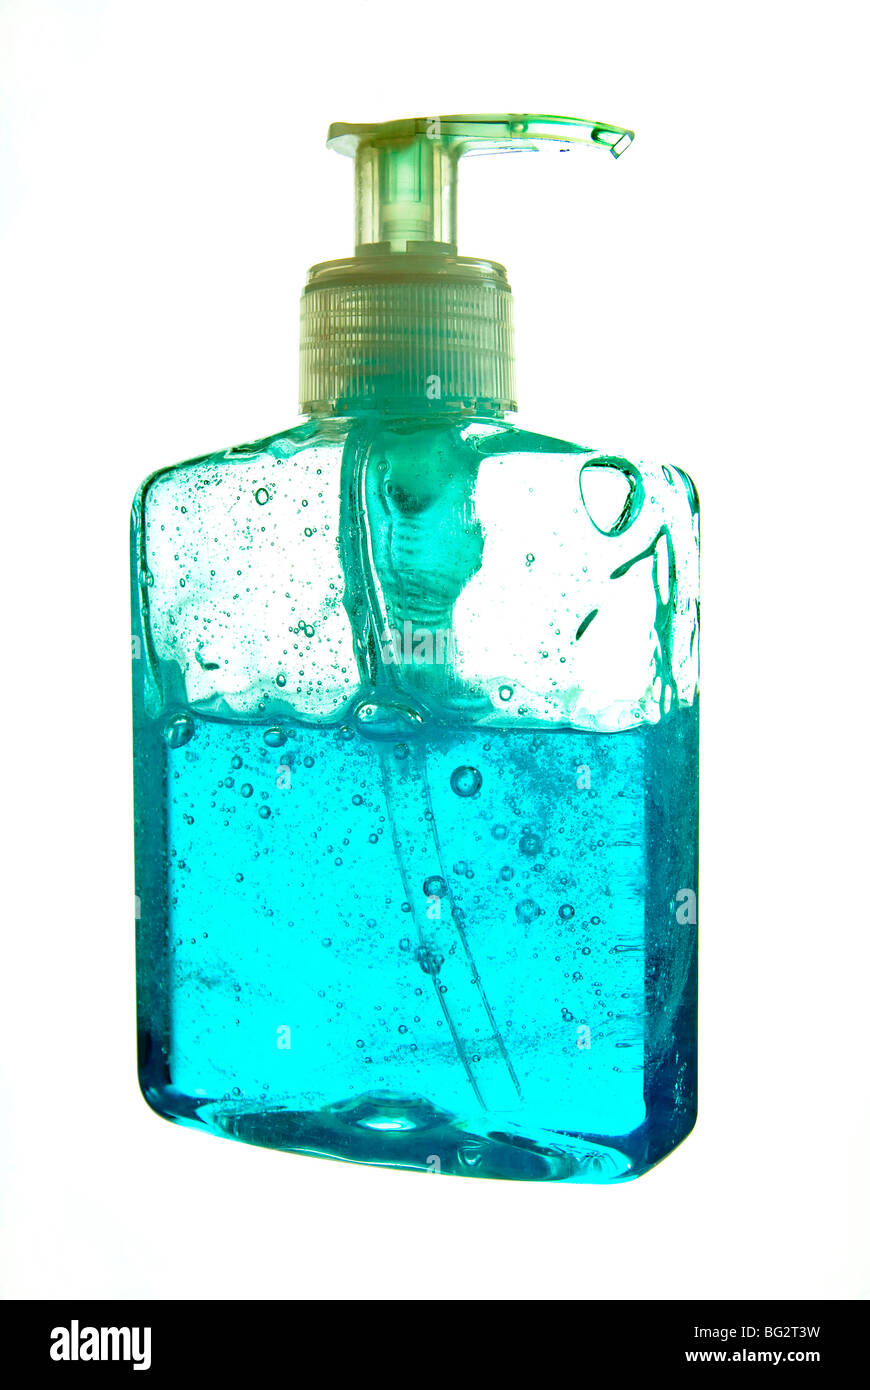 Blue Hand Wash Gel in Pump Dispenser isolated on white background - Stock Image